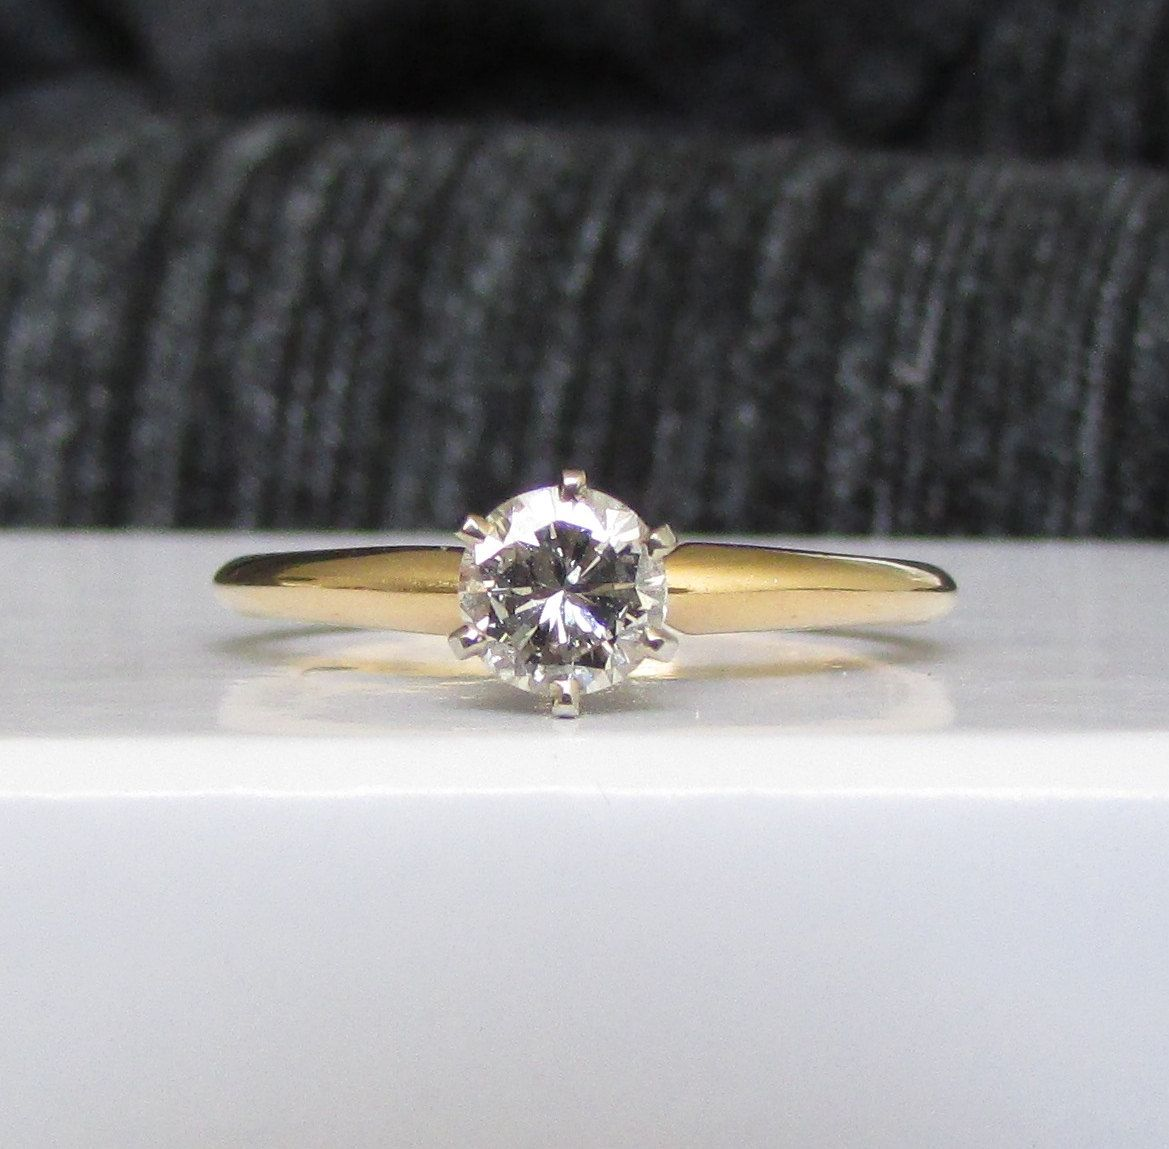 Vintage Classic 40 Carat Diamond Solitaire Engagement Ring At An Amazing Price Solid 14k Yello Diamond Solitaire Engagement Ring Si1 Diamond Engagement Rings